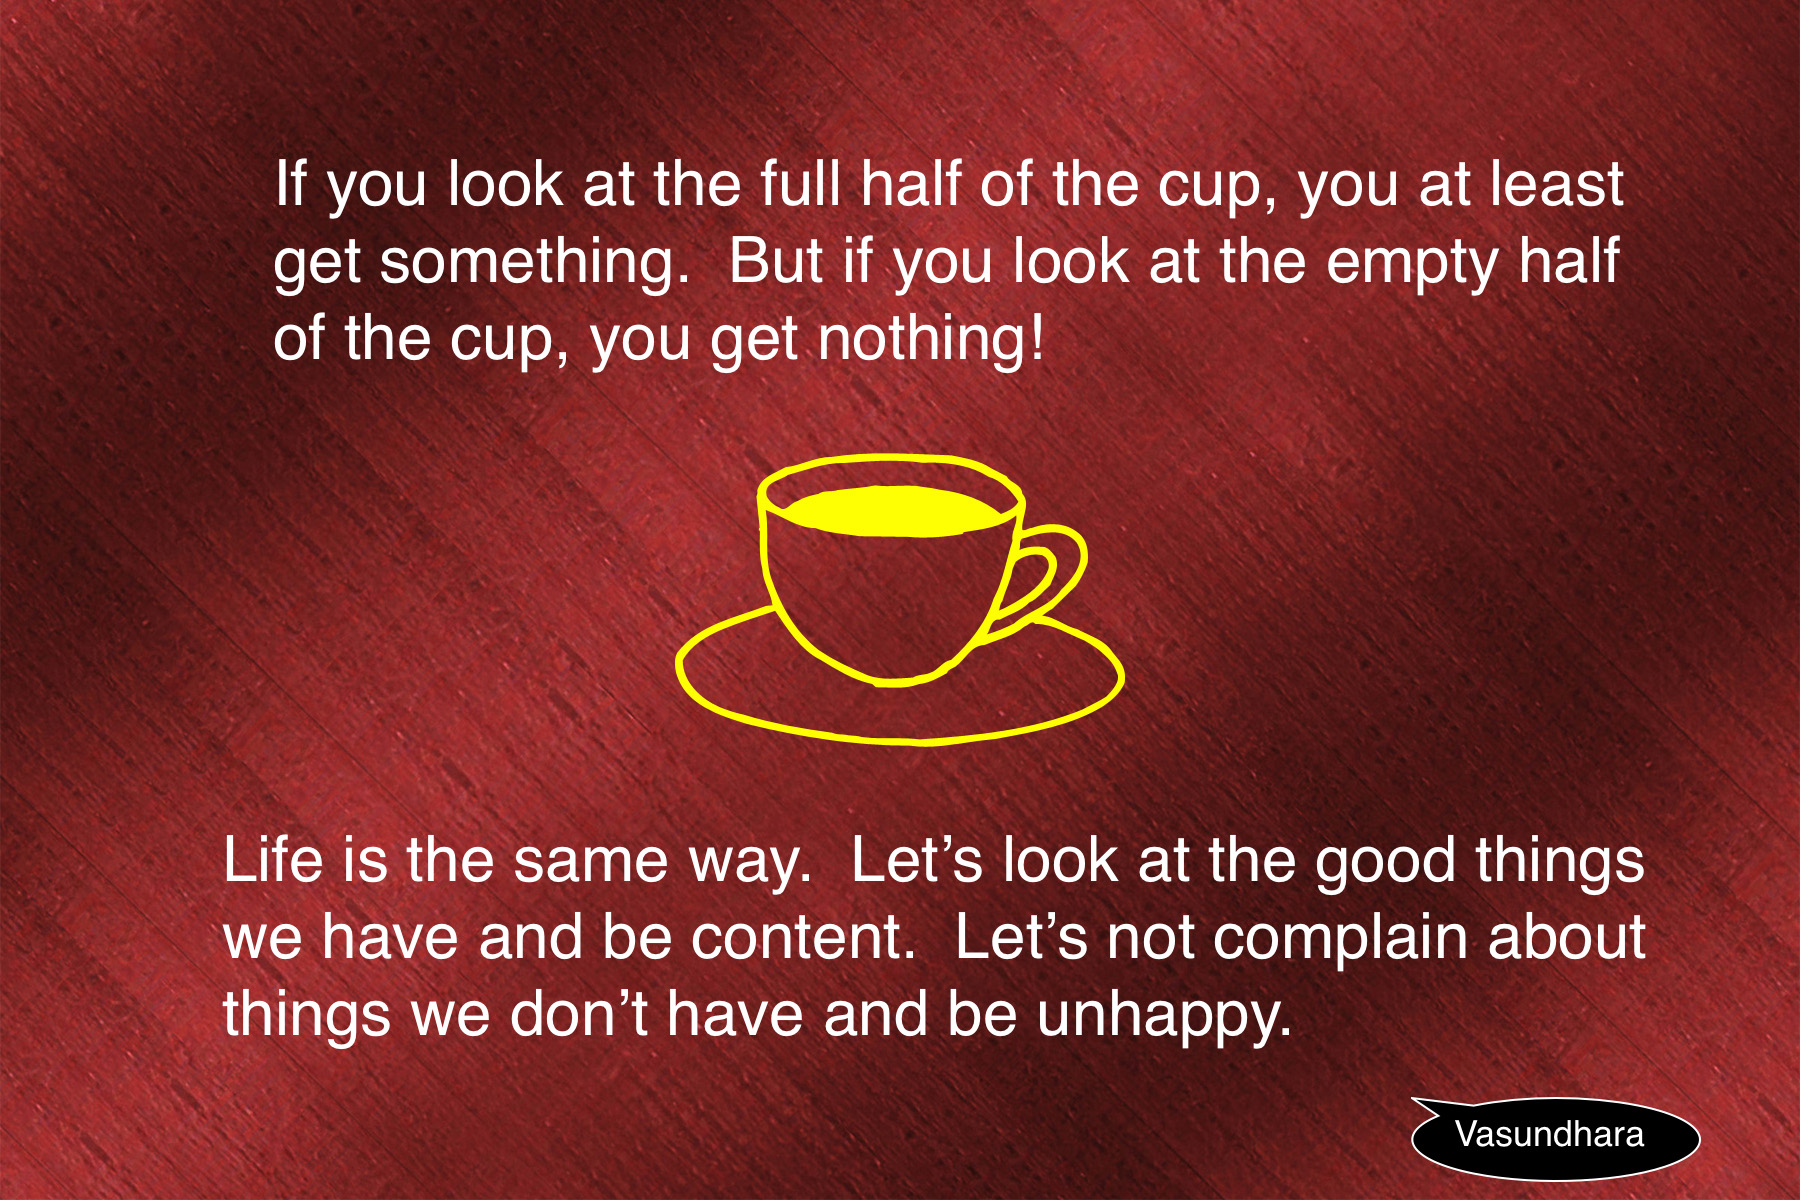 Cup Half Full Quotes: See The Full Half Of The Cup